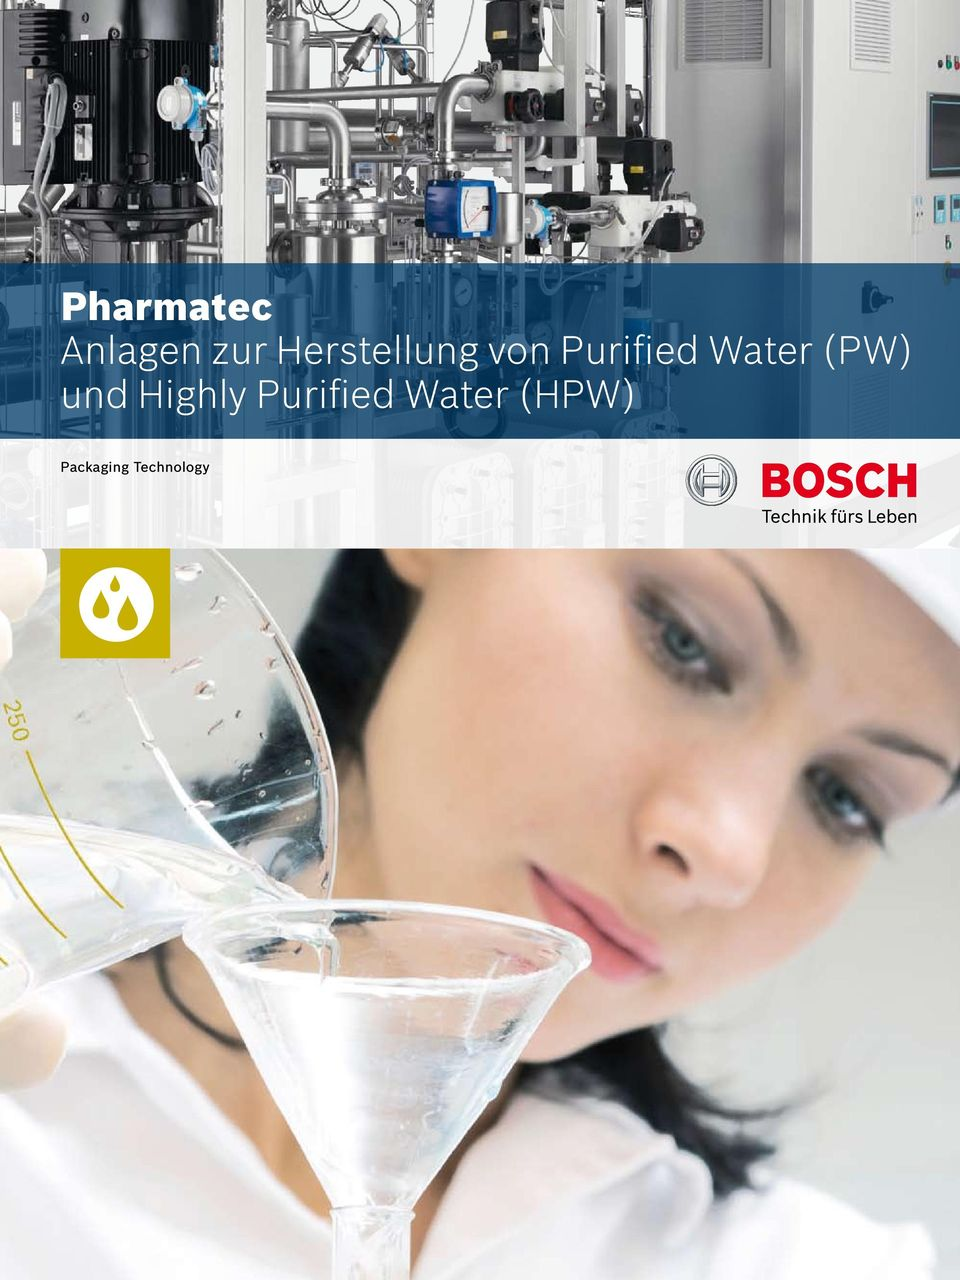 Water (PW) und Highly